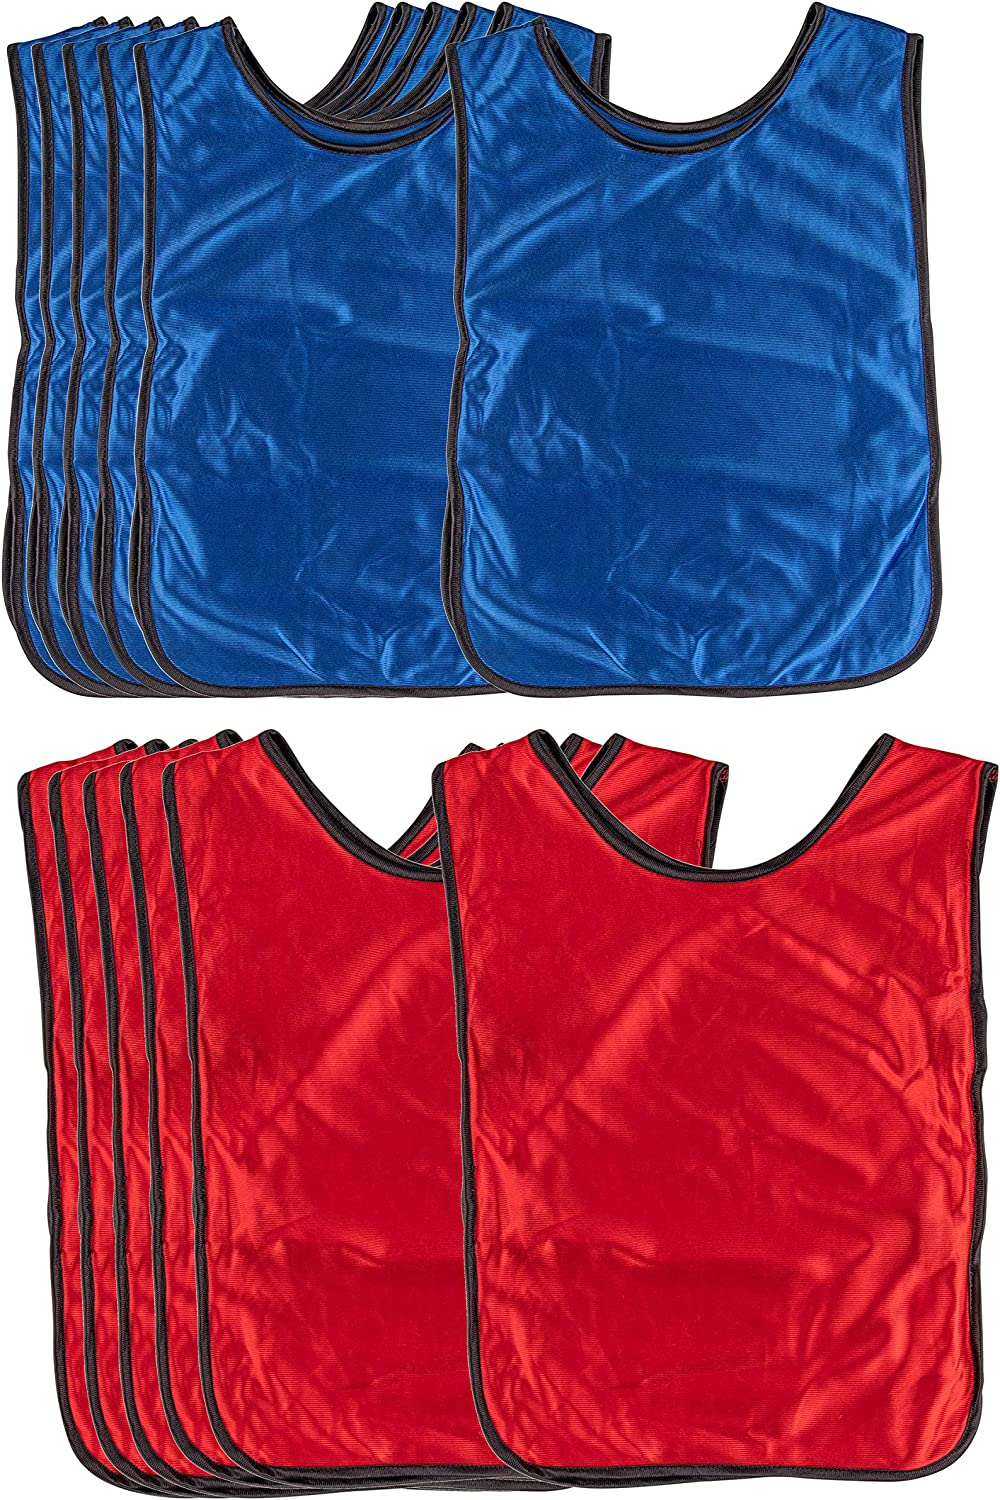 Scrimmage Vests - 12-Pack Soccer Pinnies, Team Jersey, Training Vest, Soccer Scrimmage Vests for Adults Men Women, for Basketball, Football, Volleyball, Red and Blue, Adults Over 180 Lbs: Clothing